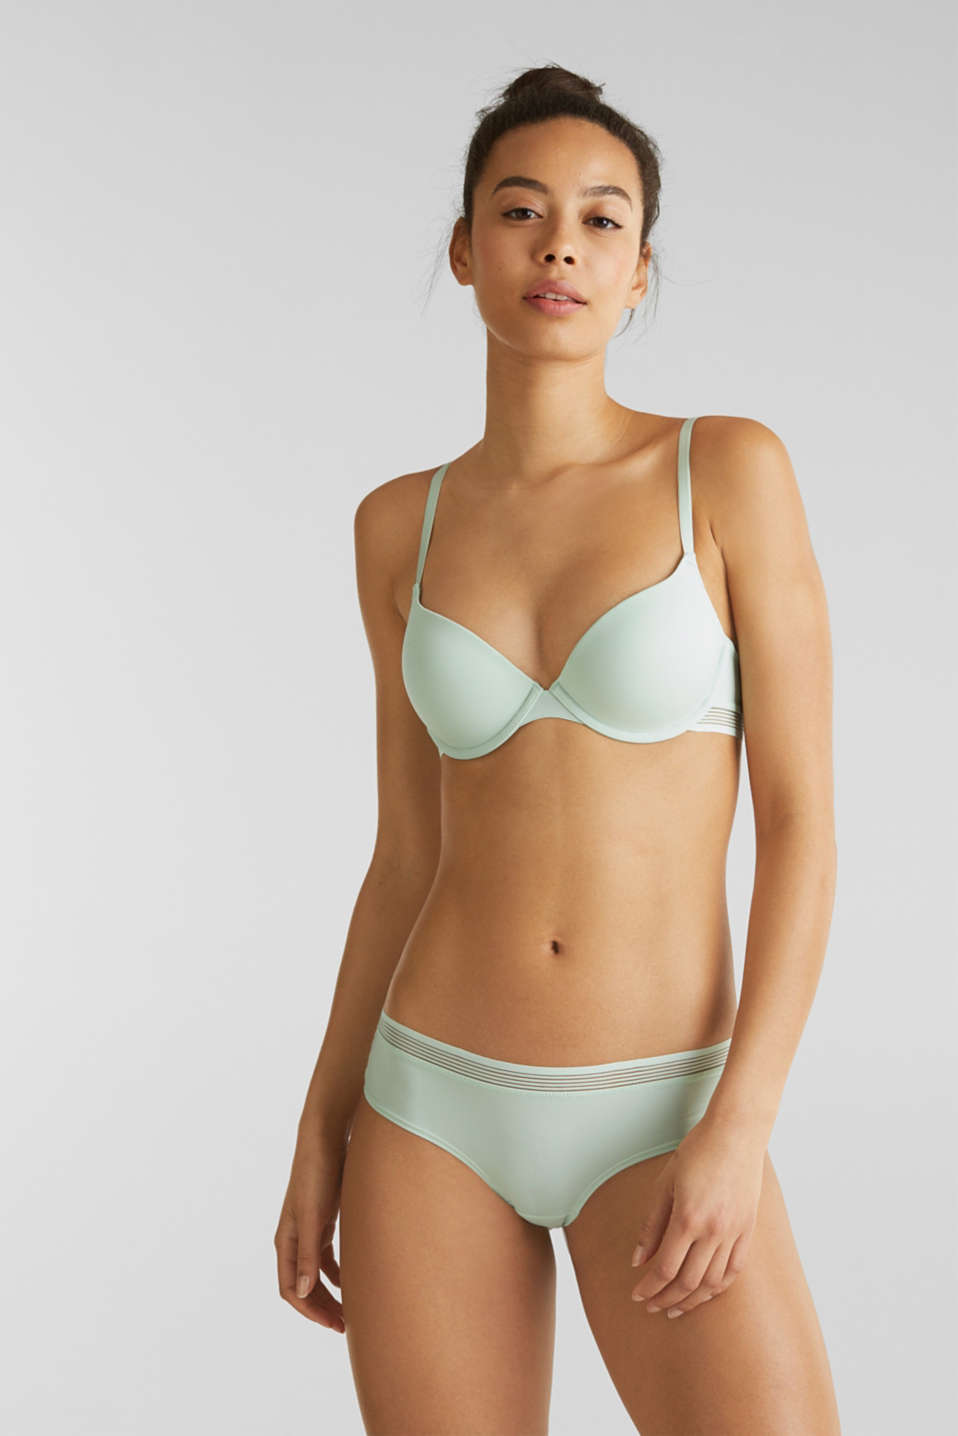 Padded push-up bra with sheer stripes, LIGHT AQUA GREEN, detail image number 0